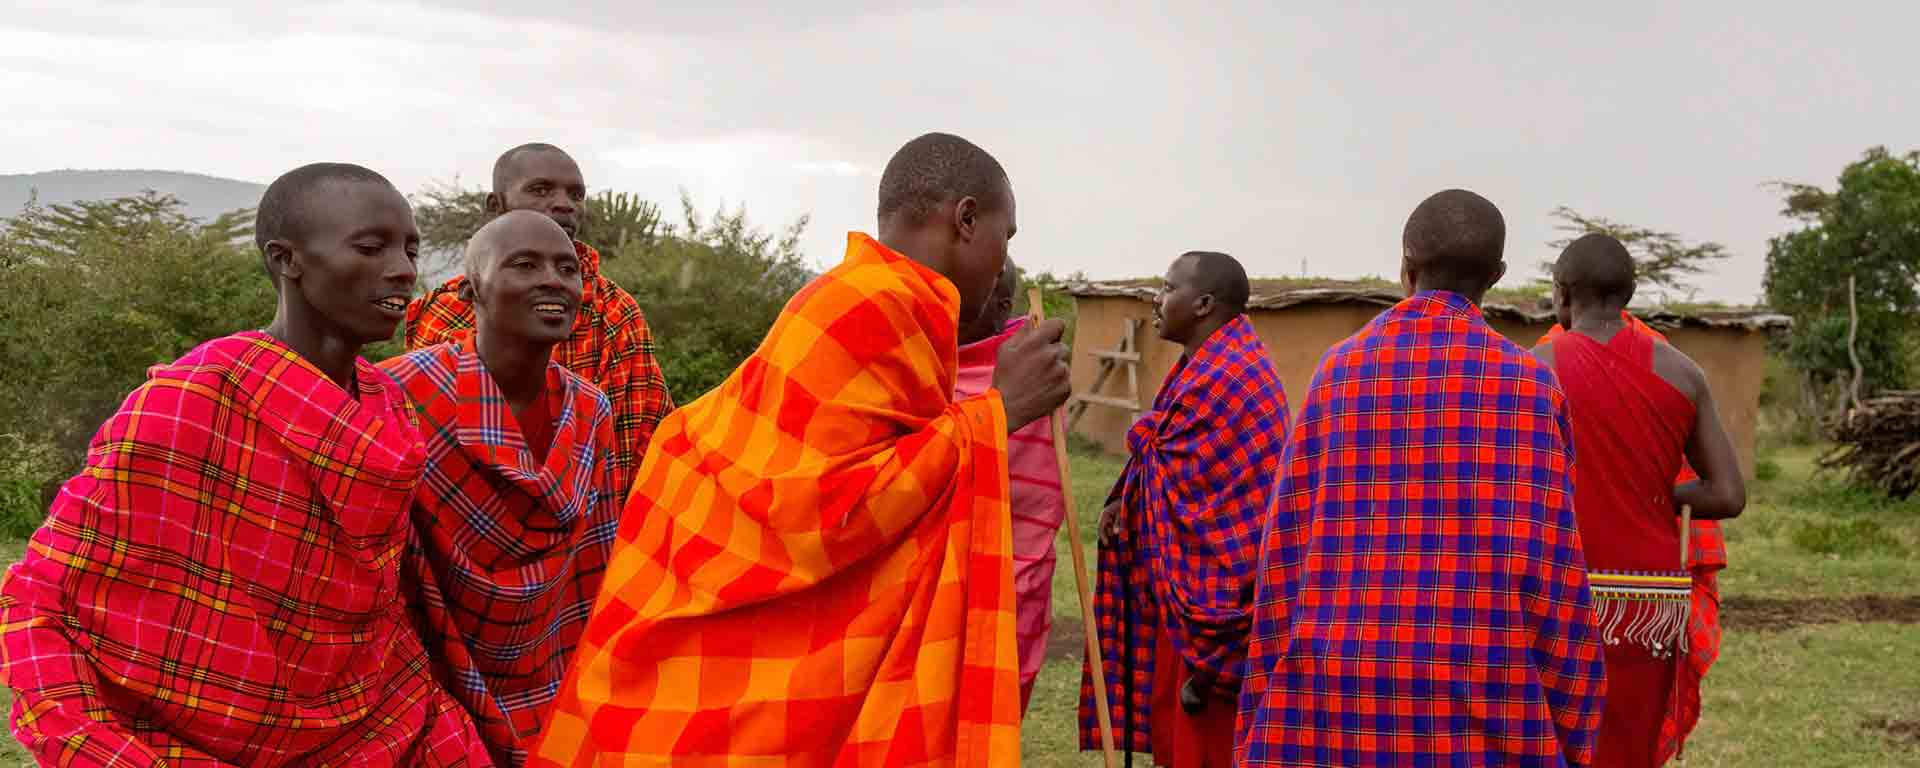 Photographing the Masai culture while on your Masai Mara photo safari